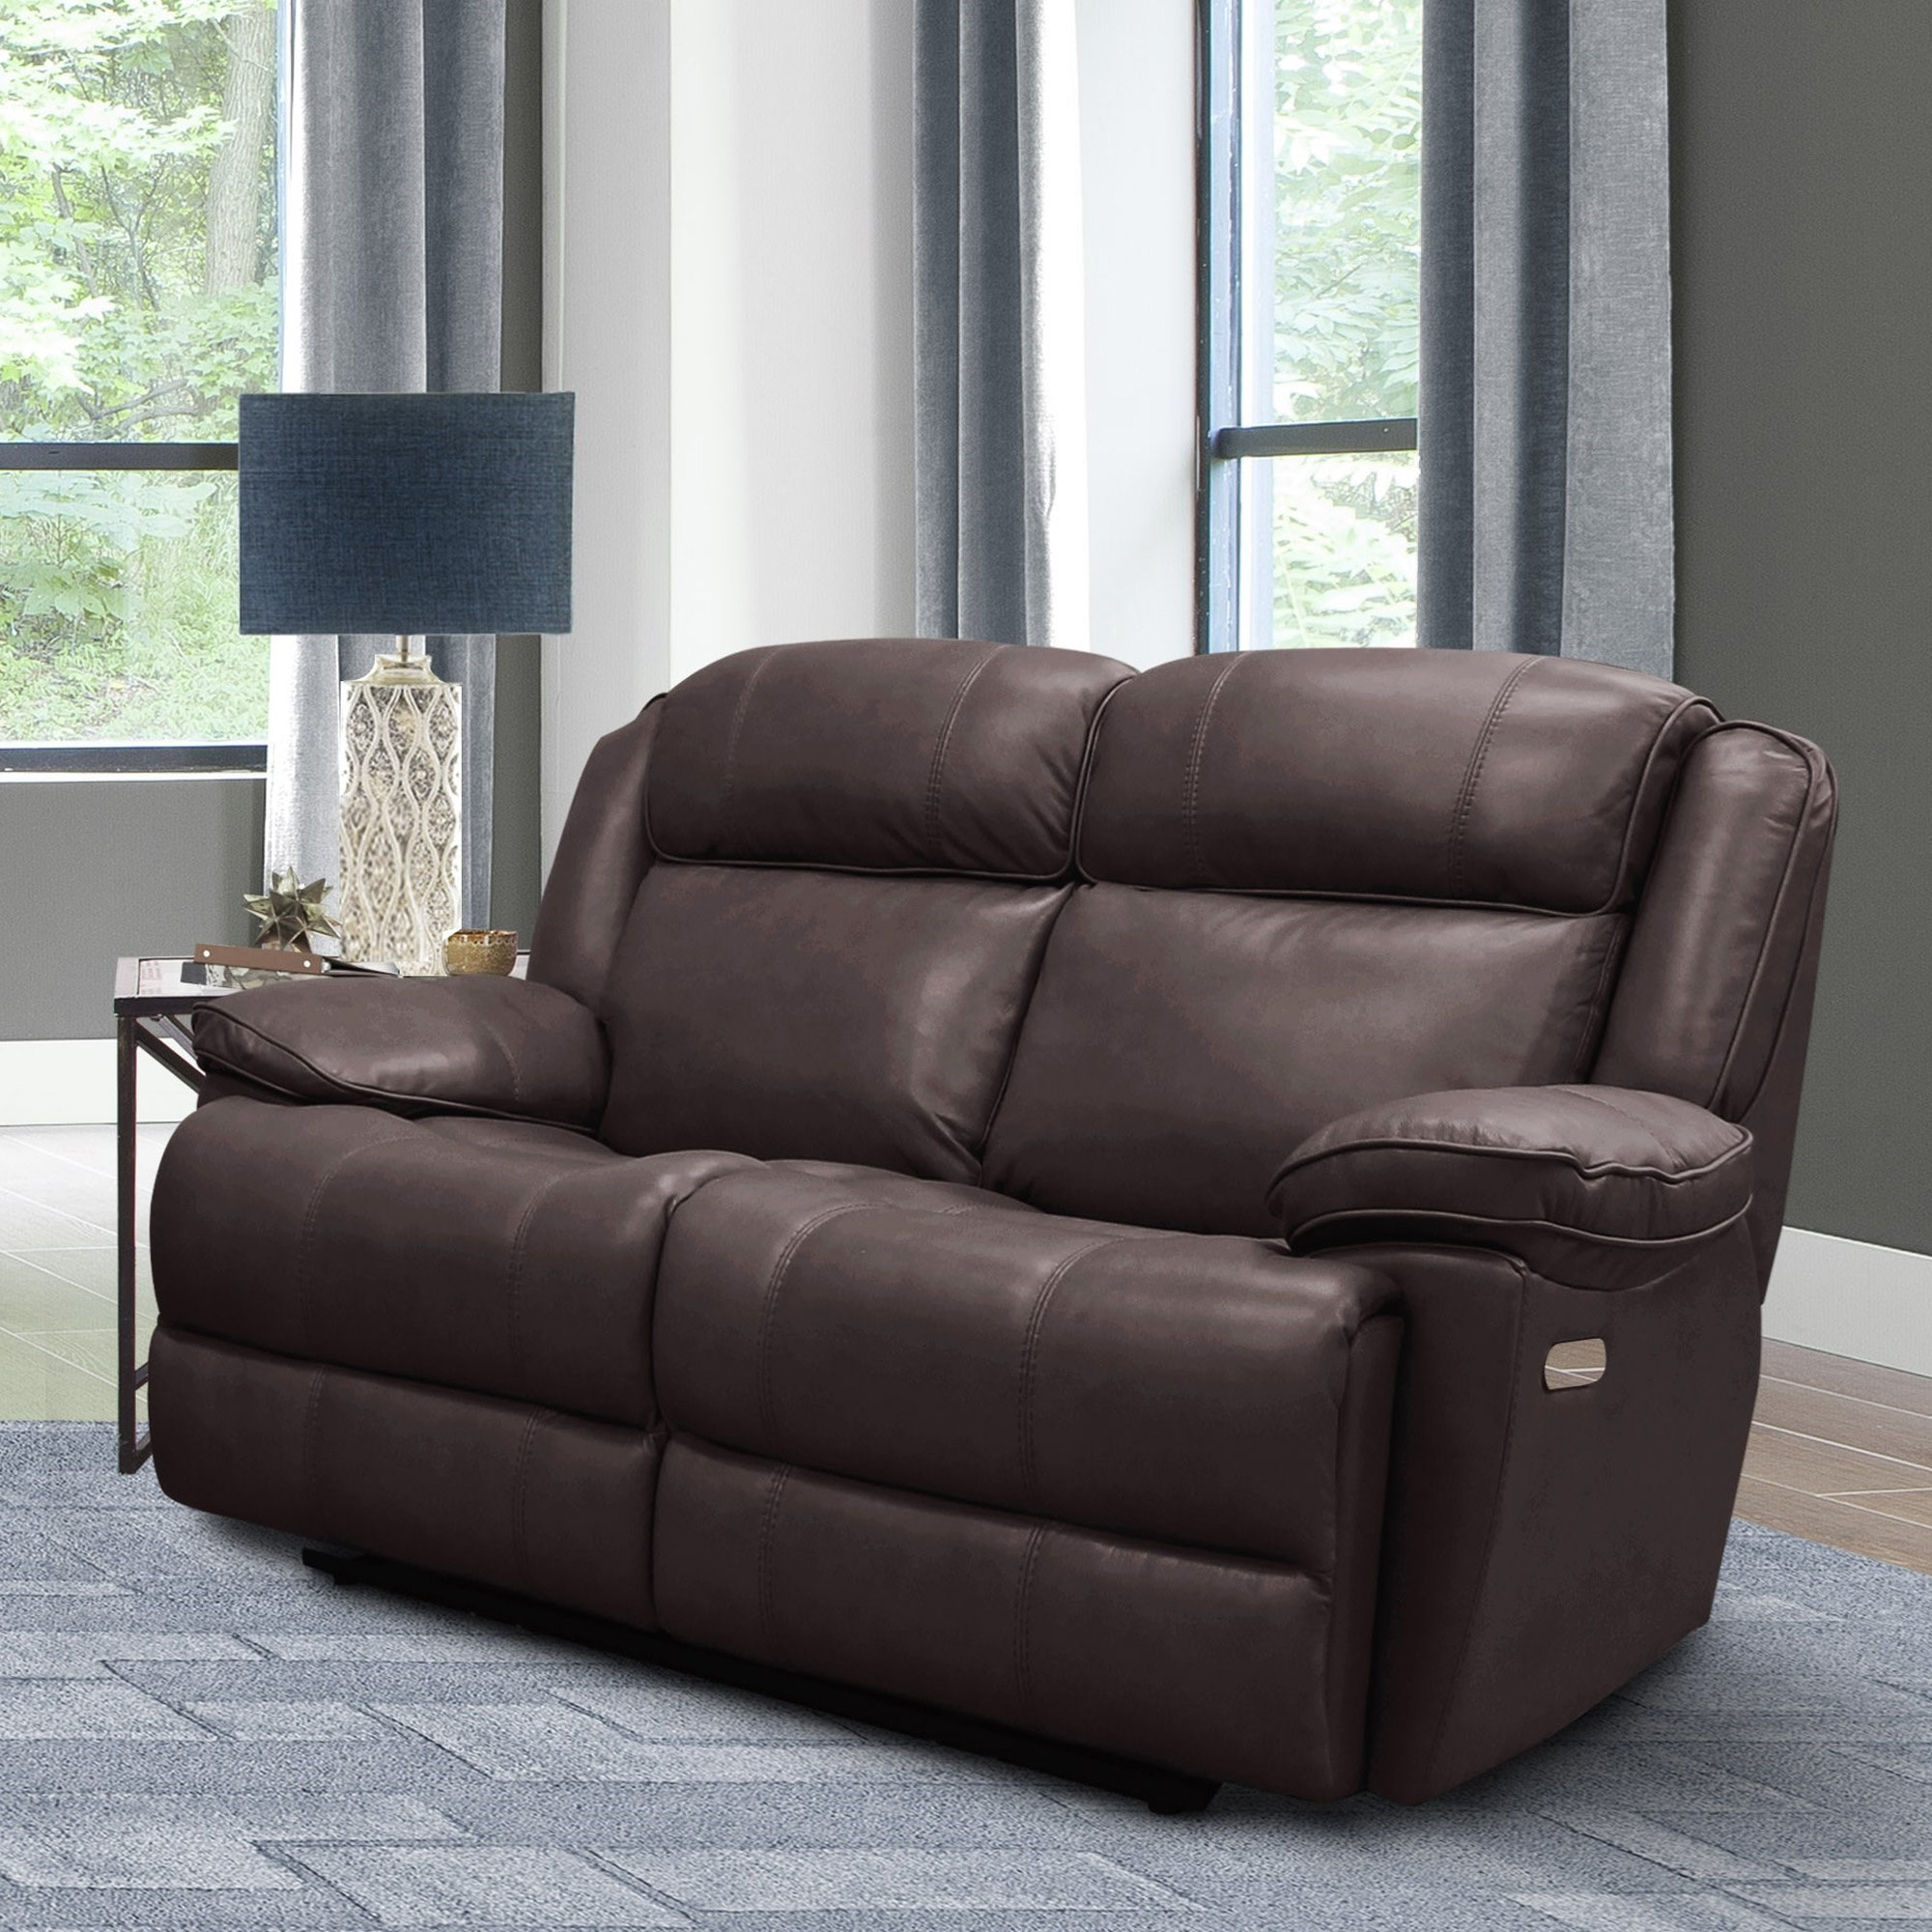 Eclipse Power Reclining Loveseat by Parker Living at Smart Buy Furniture